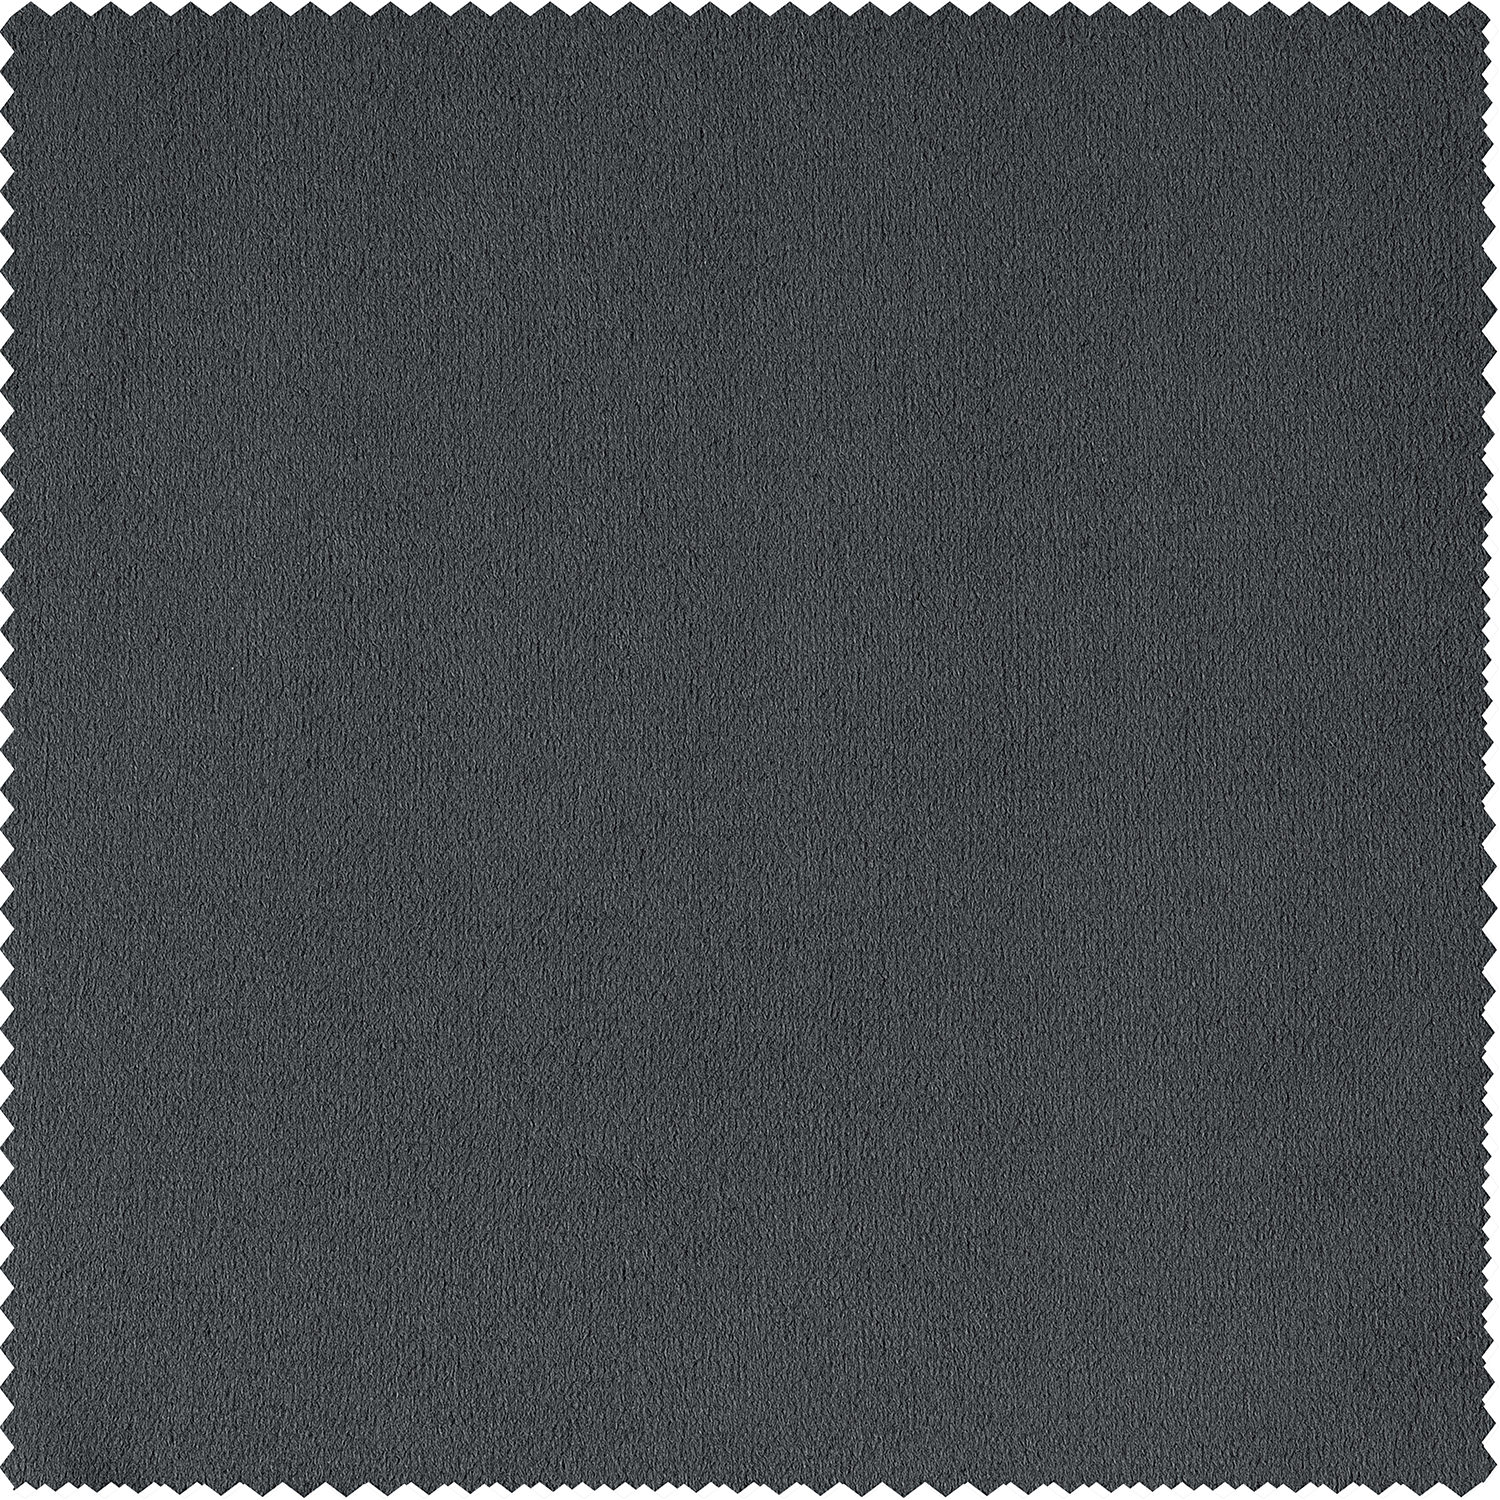 Signature Natural Grey Blackout Velvet Fabric